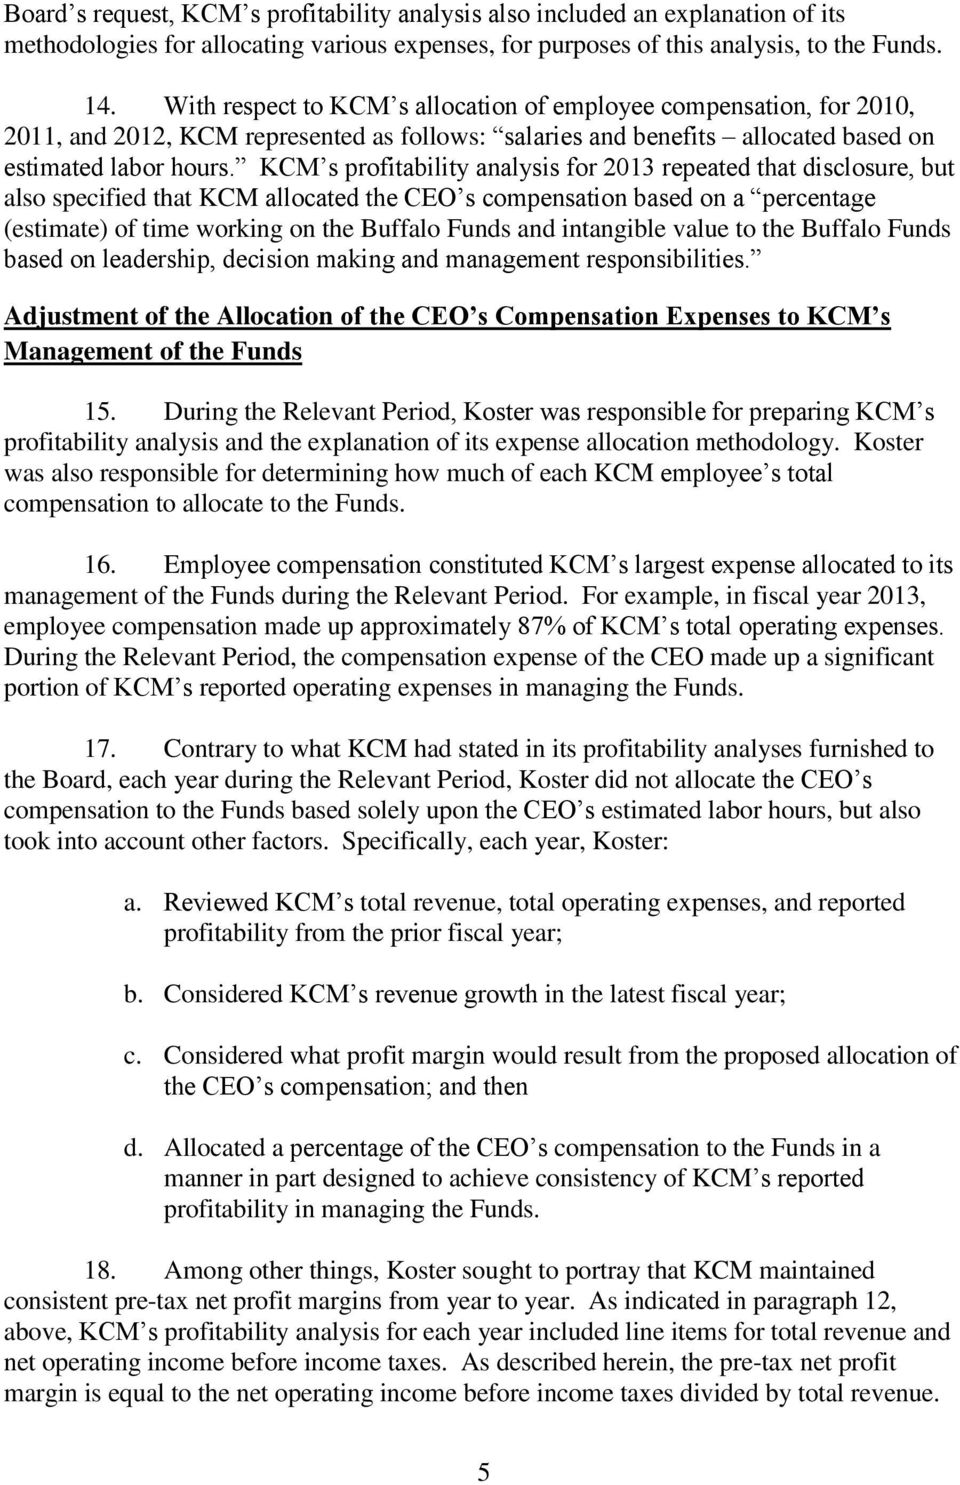 KCM s profitability analysis for 2013 repeated that disclosure, but also specified that KCM allocated the CEO s compensation based on a percentage (estimate) of time working on the Buffalo Funds and